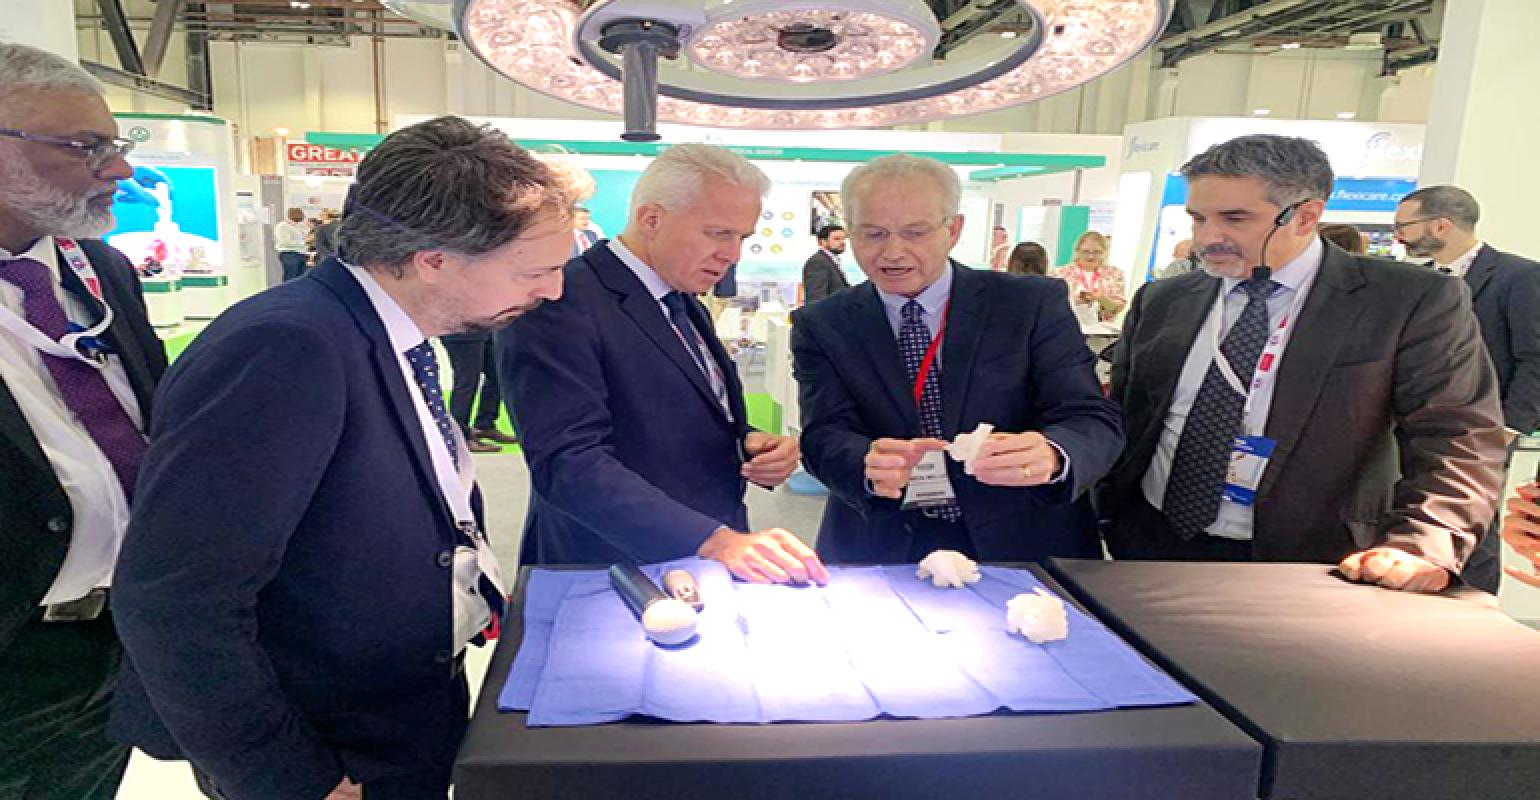 Surgical Simulation Has The Potential To Deliver Miracles Omnia Health Insights News From The Global Healthcare Community